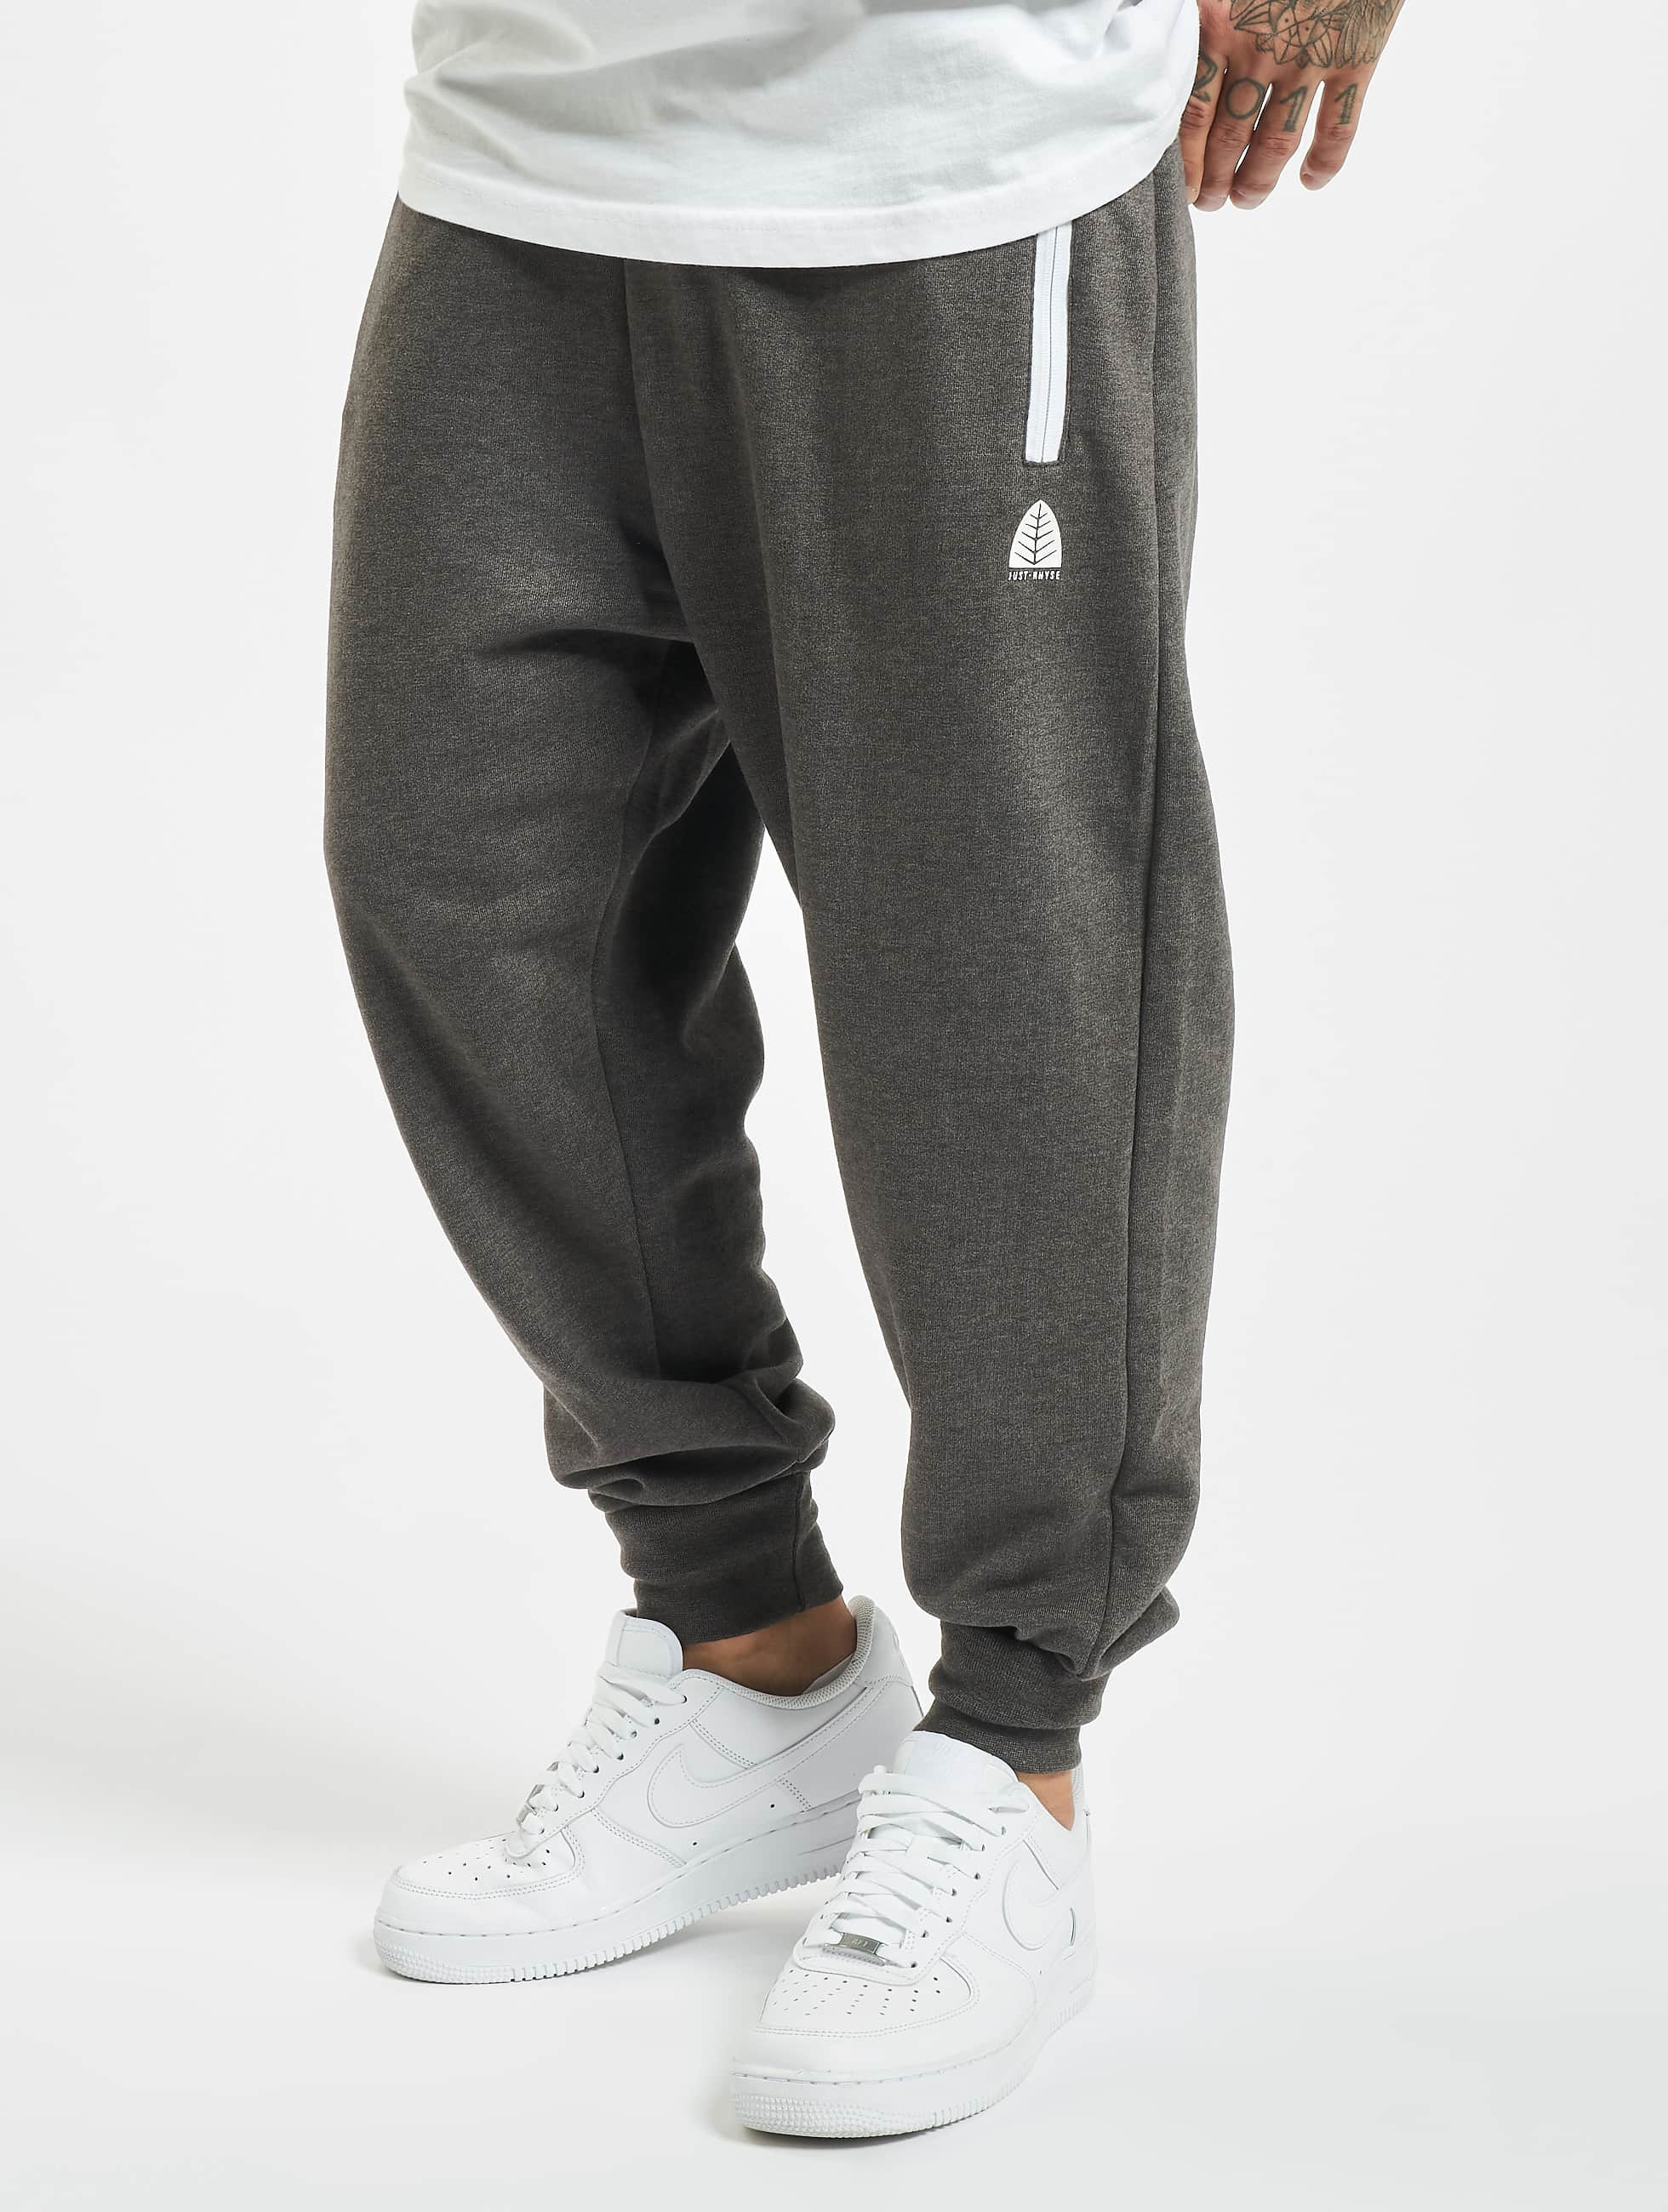 Just Rhyse / Sweat Pant Momo in grey XL